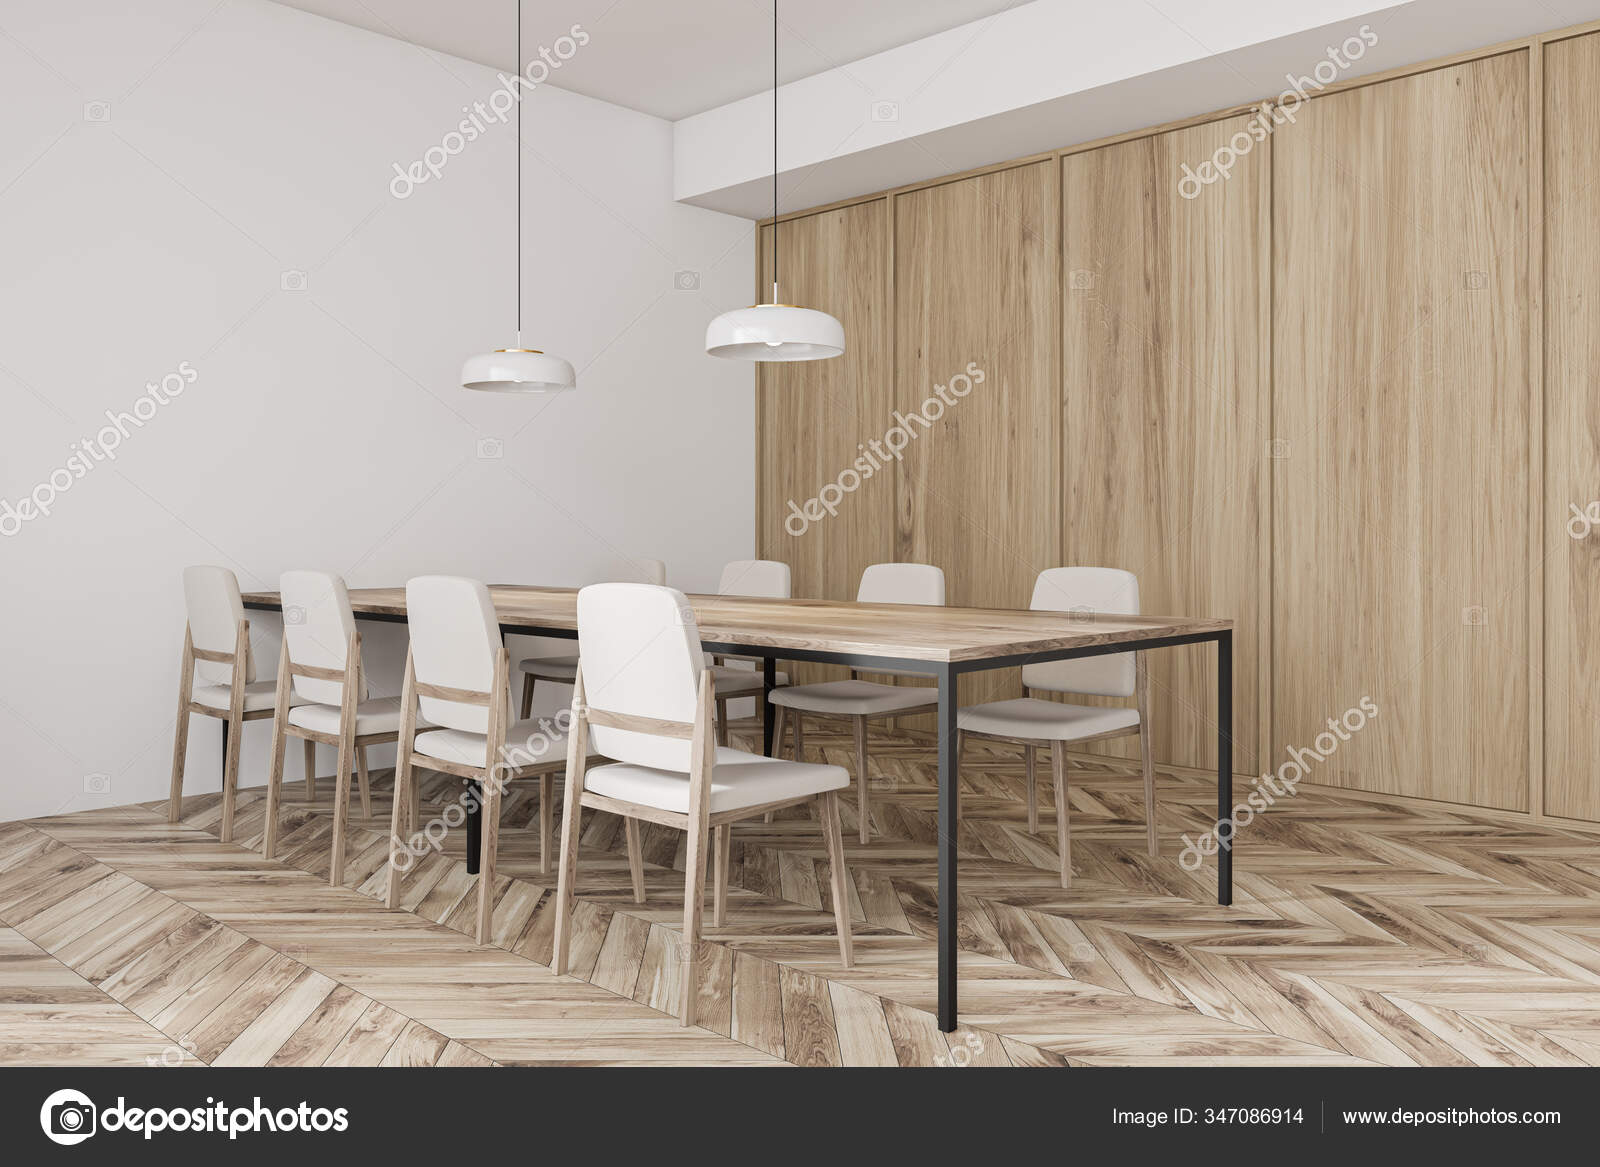 Long Wooden Dining Table Modern Traditional Restaurant White Wooden Walls Stock Photo Image By C Denisismagilov 347086914